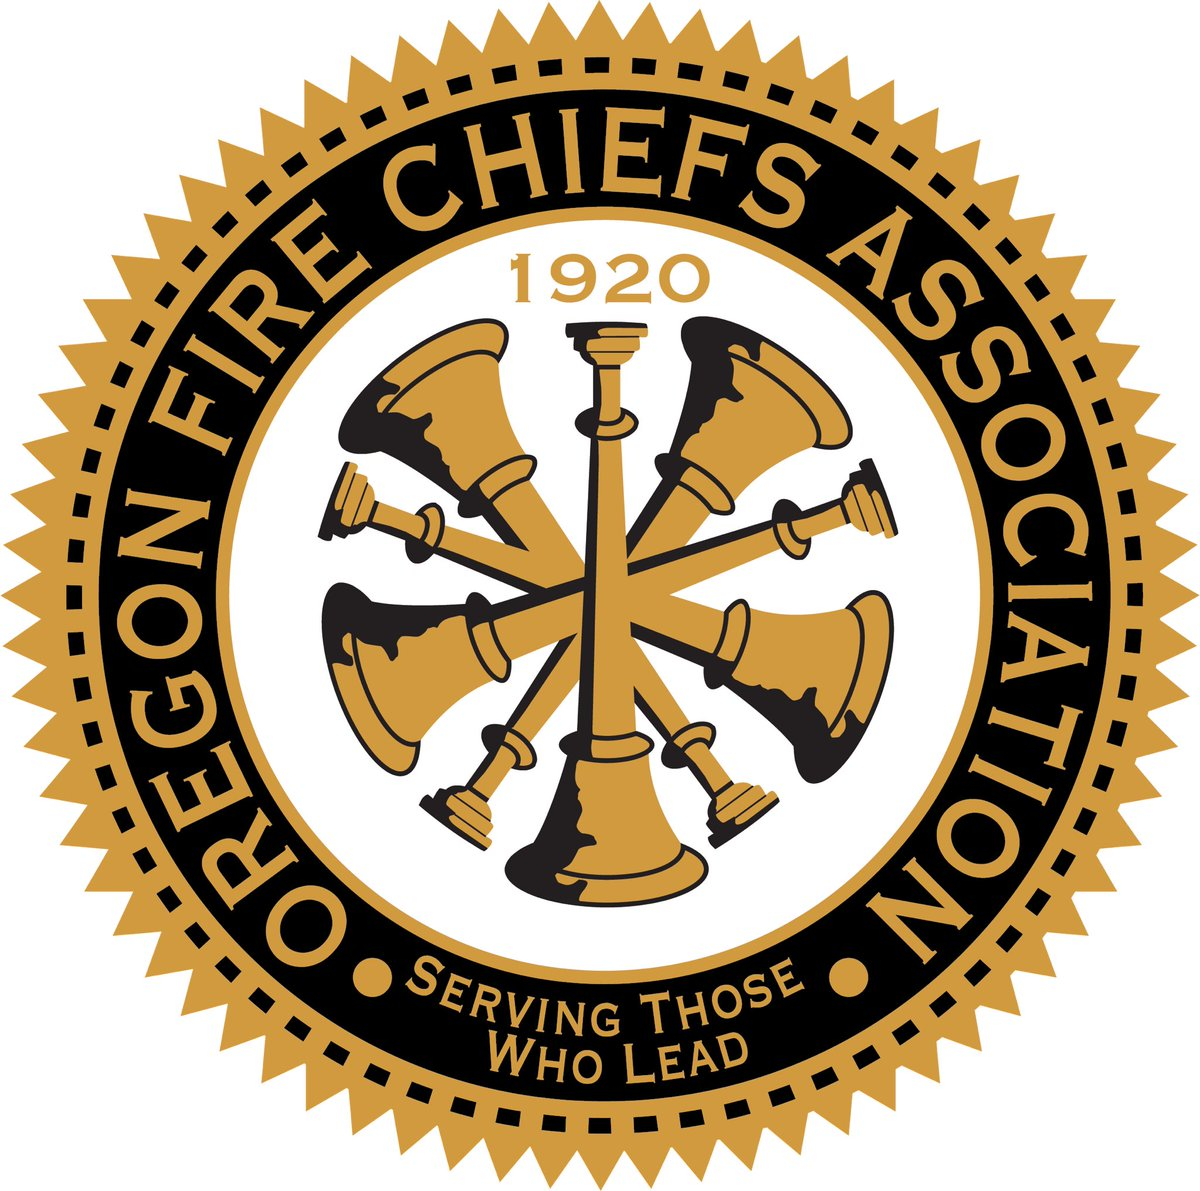 On behalf of our #National Surviving the Fire Service Authors &amp; presenters thanks to our @ORfirefighters partners for hosting us this week! Stay Safe. @saraanne71 @IFSI @IFSIresearch @SkidmoreCollege @FDNY @FCSNnational @BryanFrieders @fireengineering @BobbyHalton @IAFC_SHS<br>http://pic.twitter.com/5yyLH3jJLI